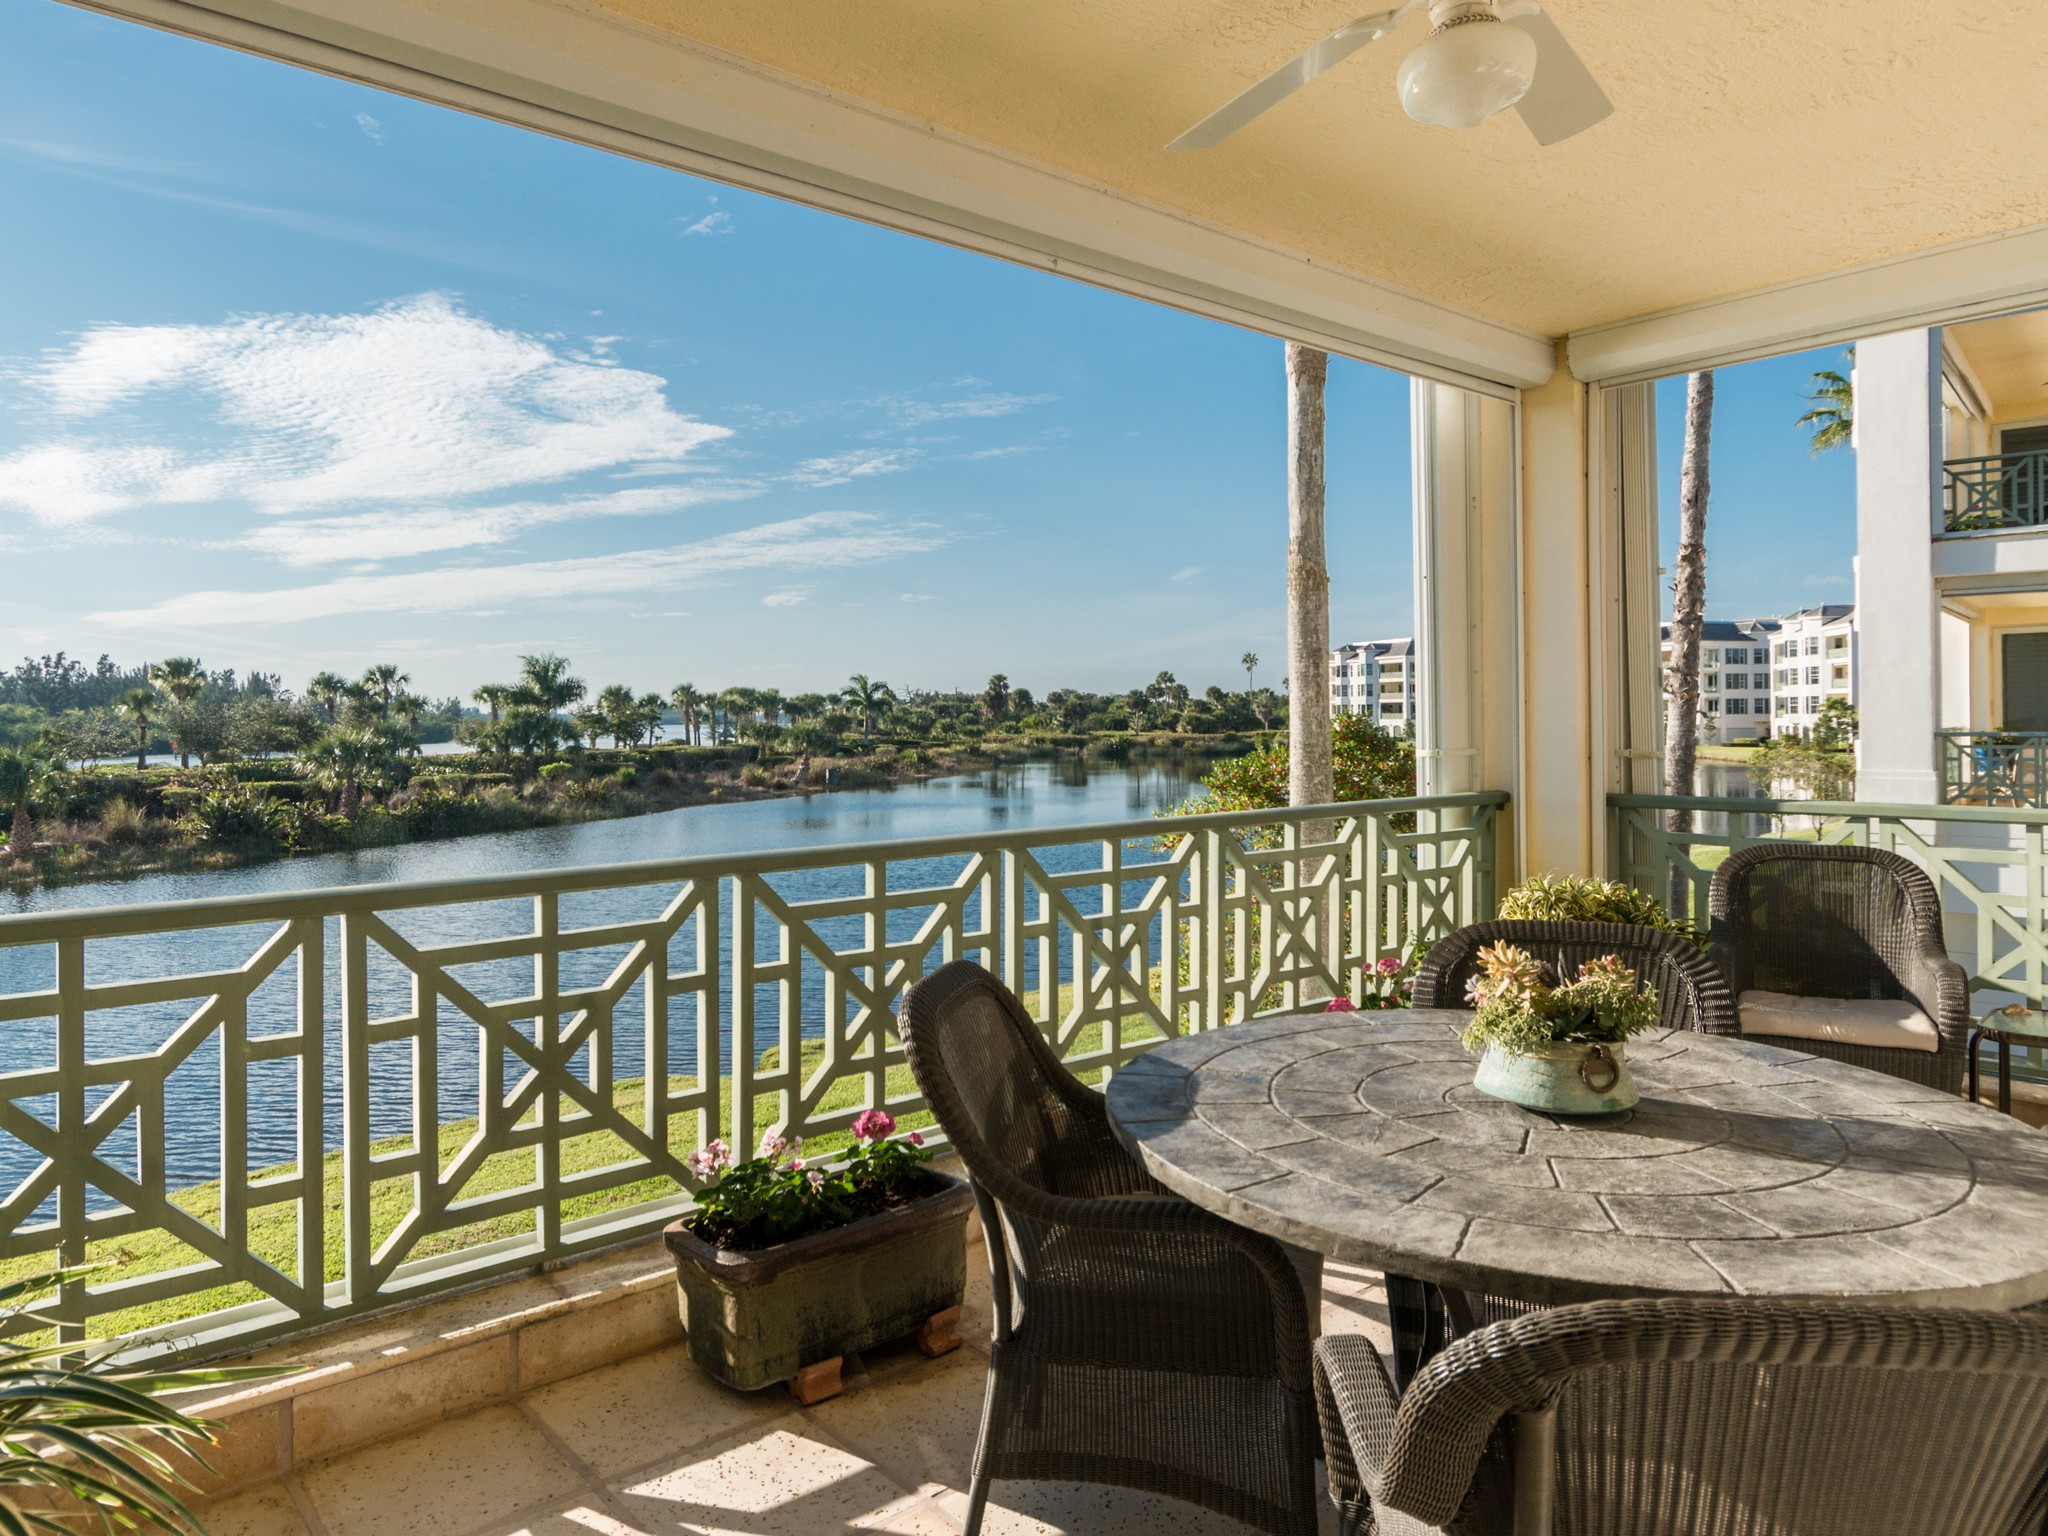 Single Family Home for Sale at Move-in Ready River view Condo 9013 Somerset Bay Lane #202 Vero Beach, Florida, 32963 United States